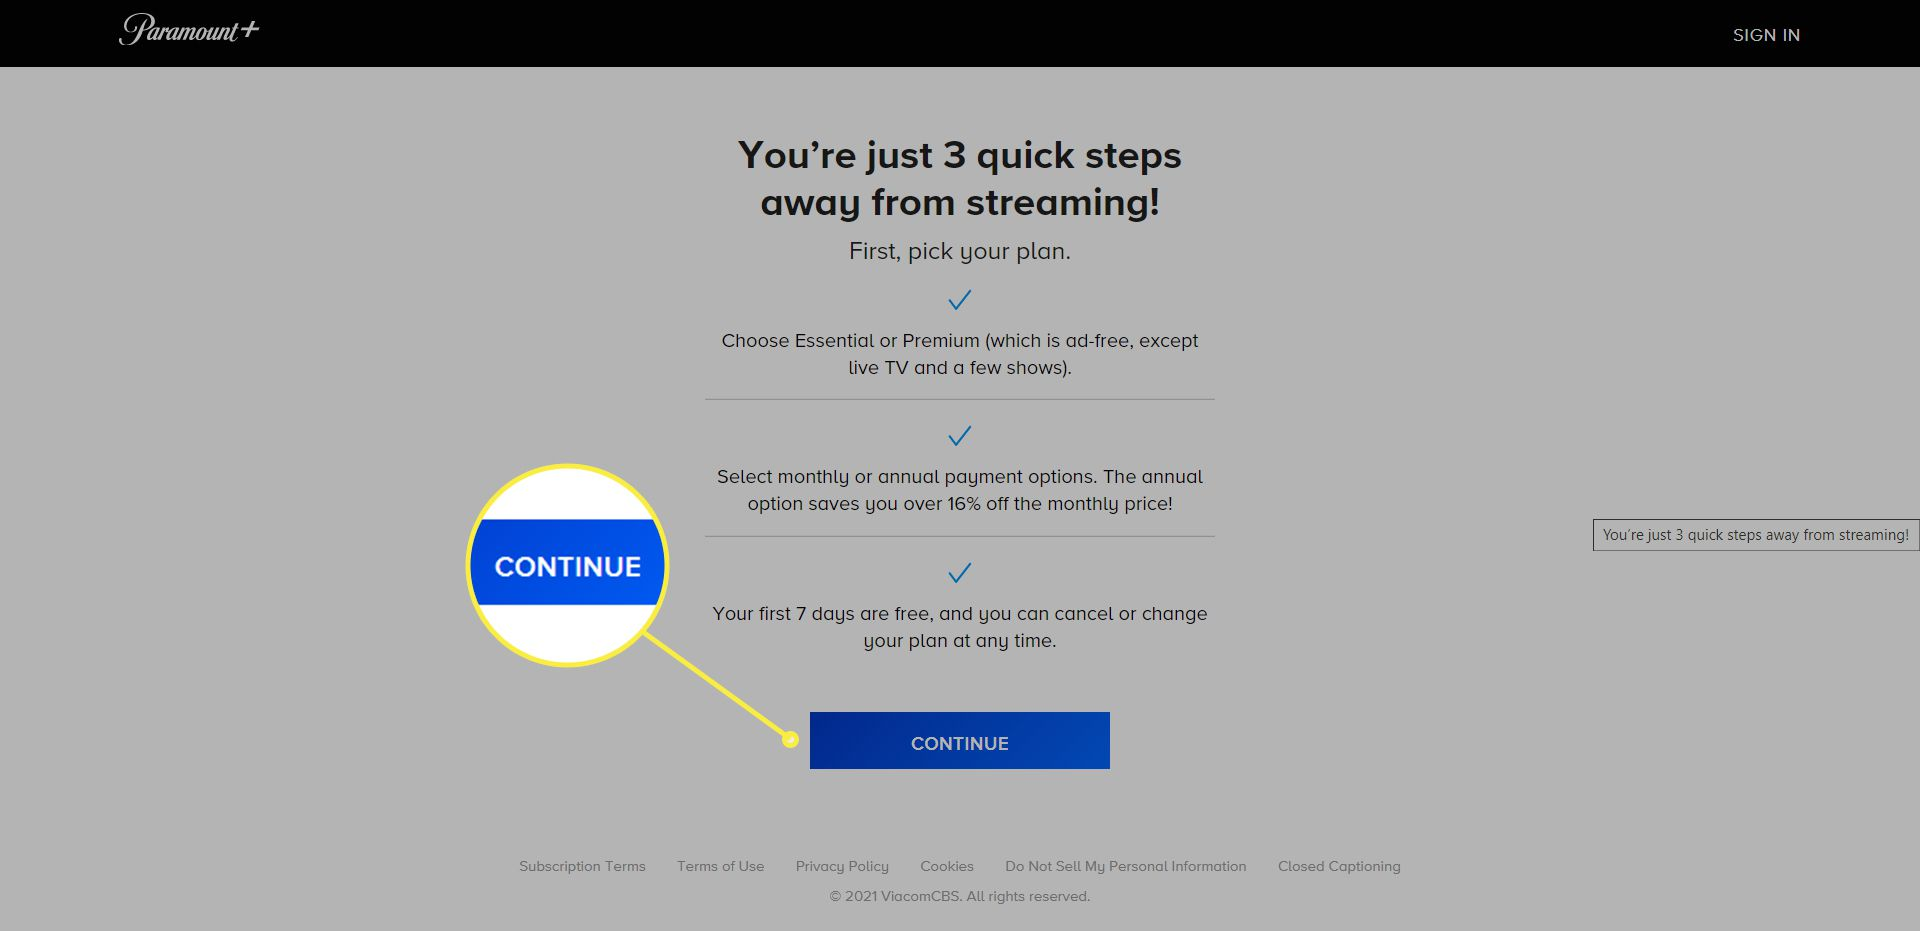 The Paramount+ signup process. The 'Continue' button is highlighted.